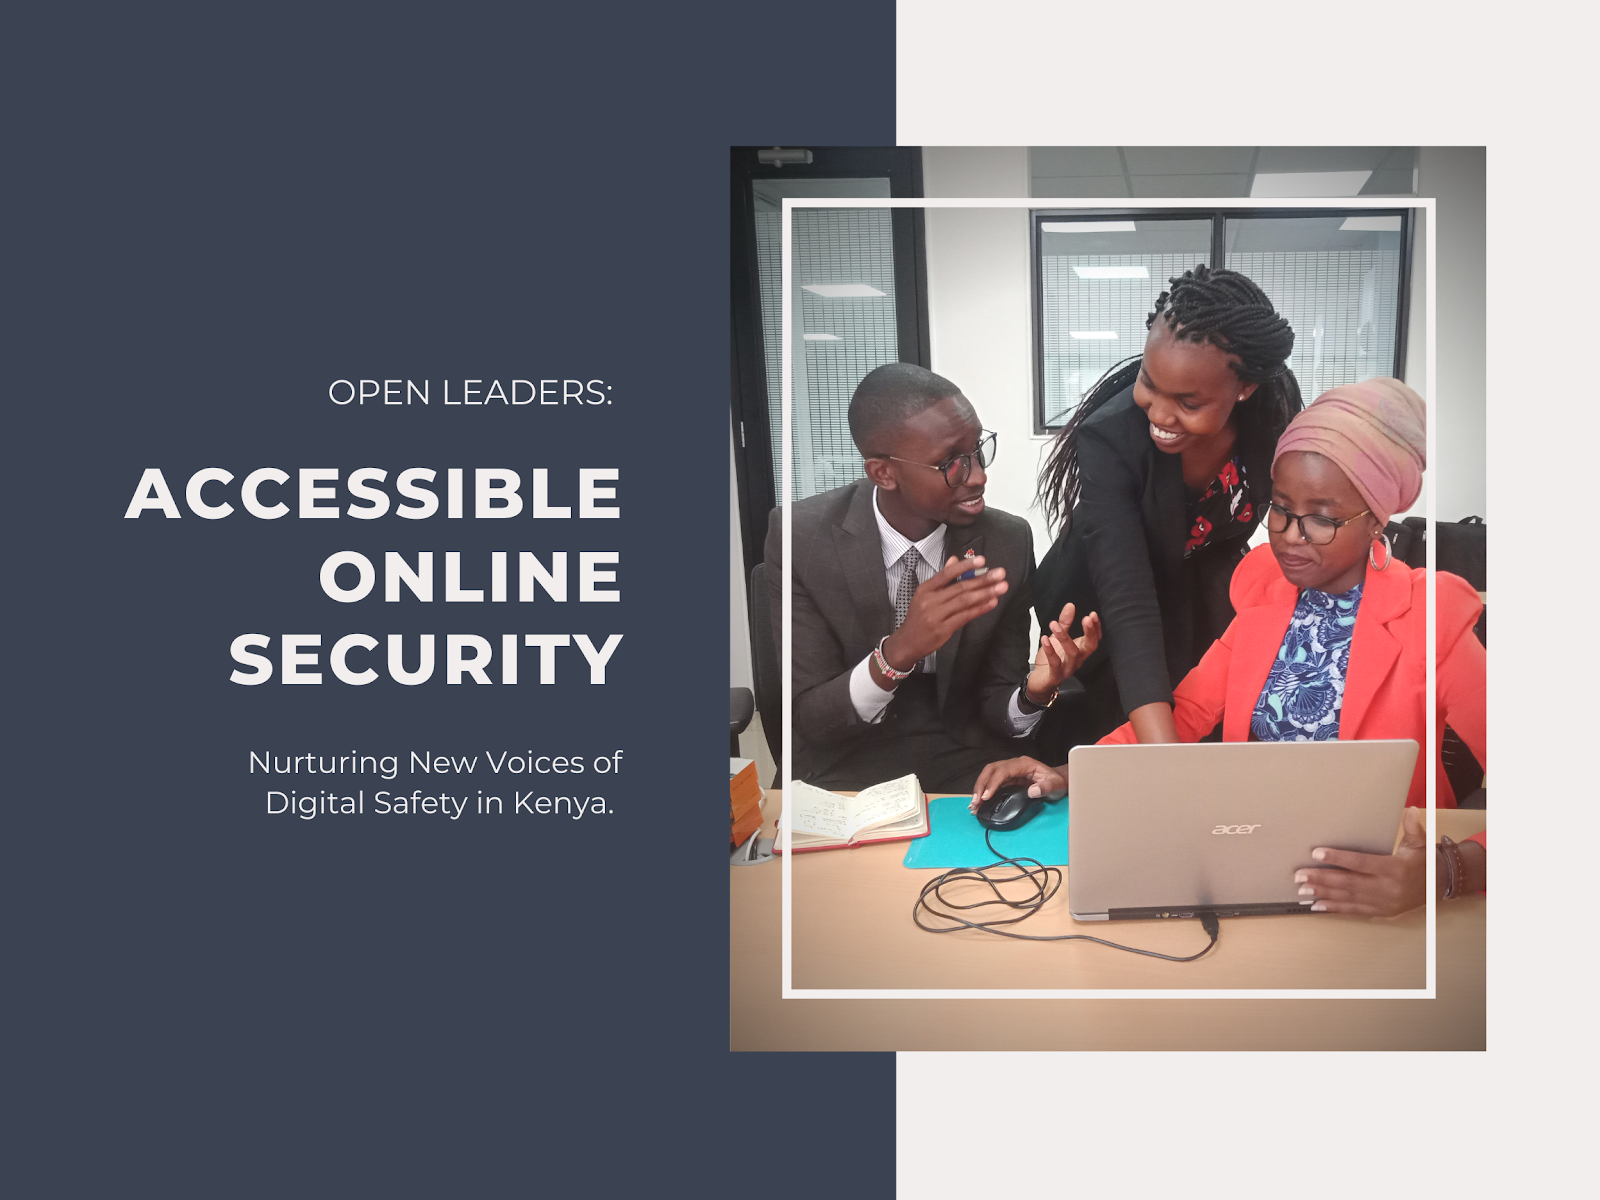 Accessible Online Security